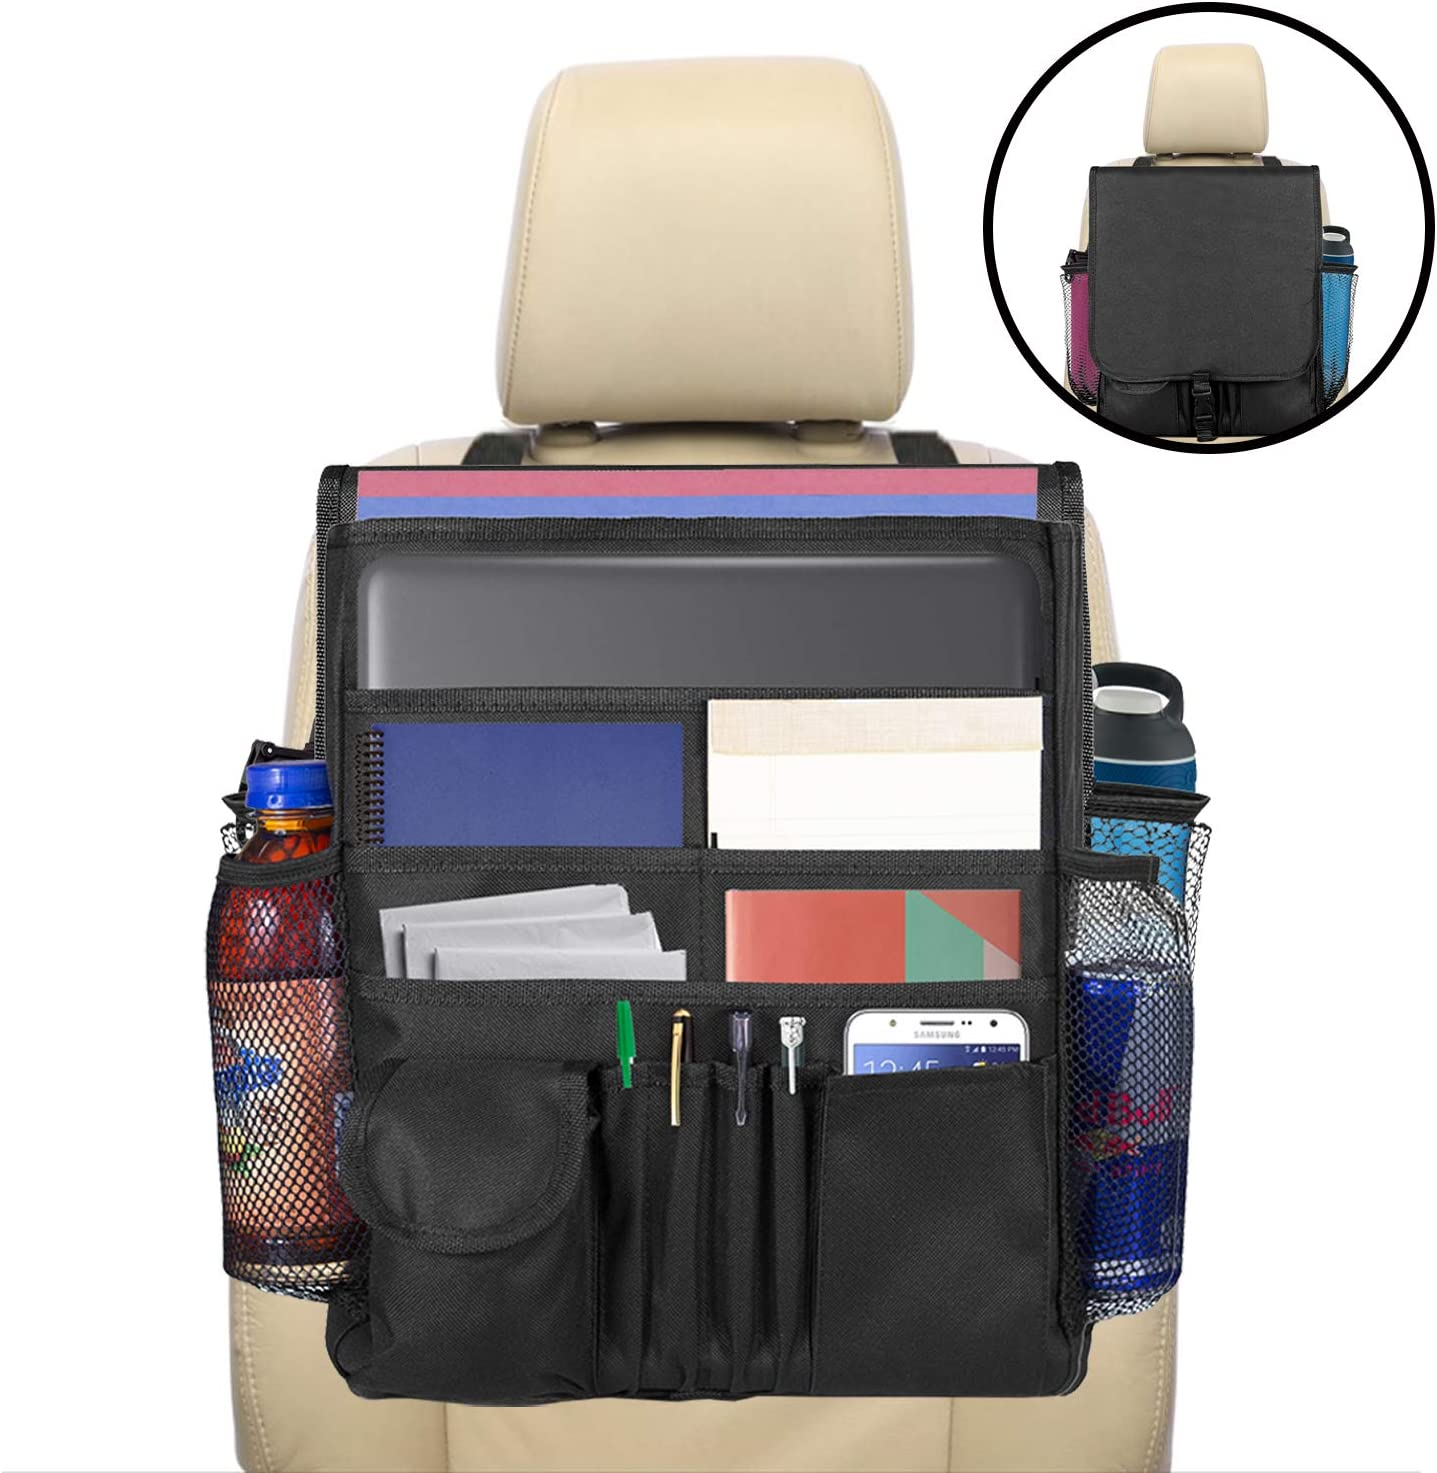 lebogner Car Organizer, Front Seat Storage Organizer, Small Driver Accessories Travel Car Office Organizer, Backseat Organizer with Large Secured Pockets, Car Seat Caddy, for Adults and Kids